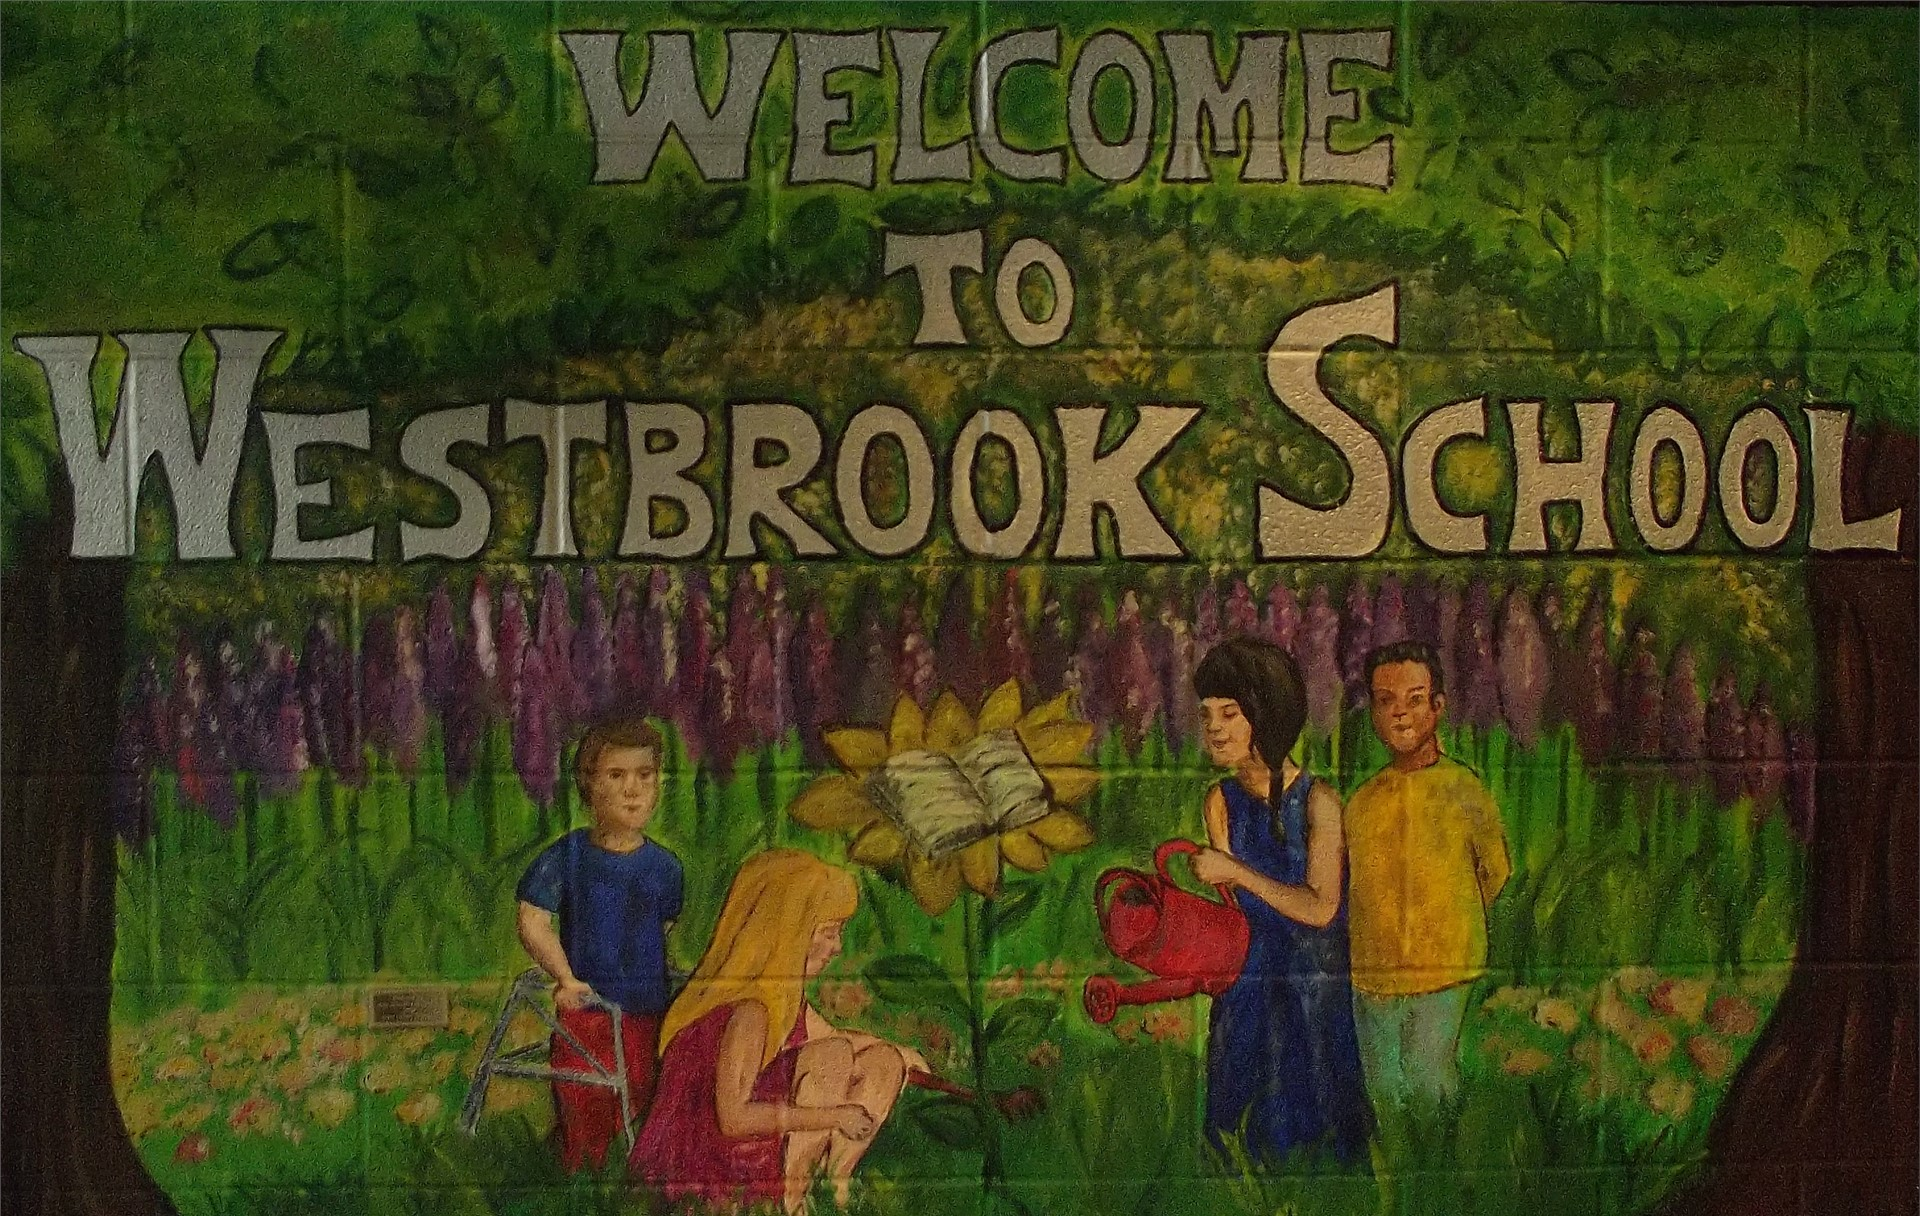 Welcome to Westbrook School